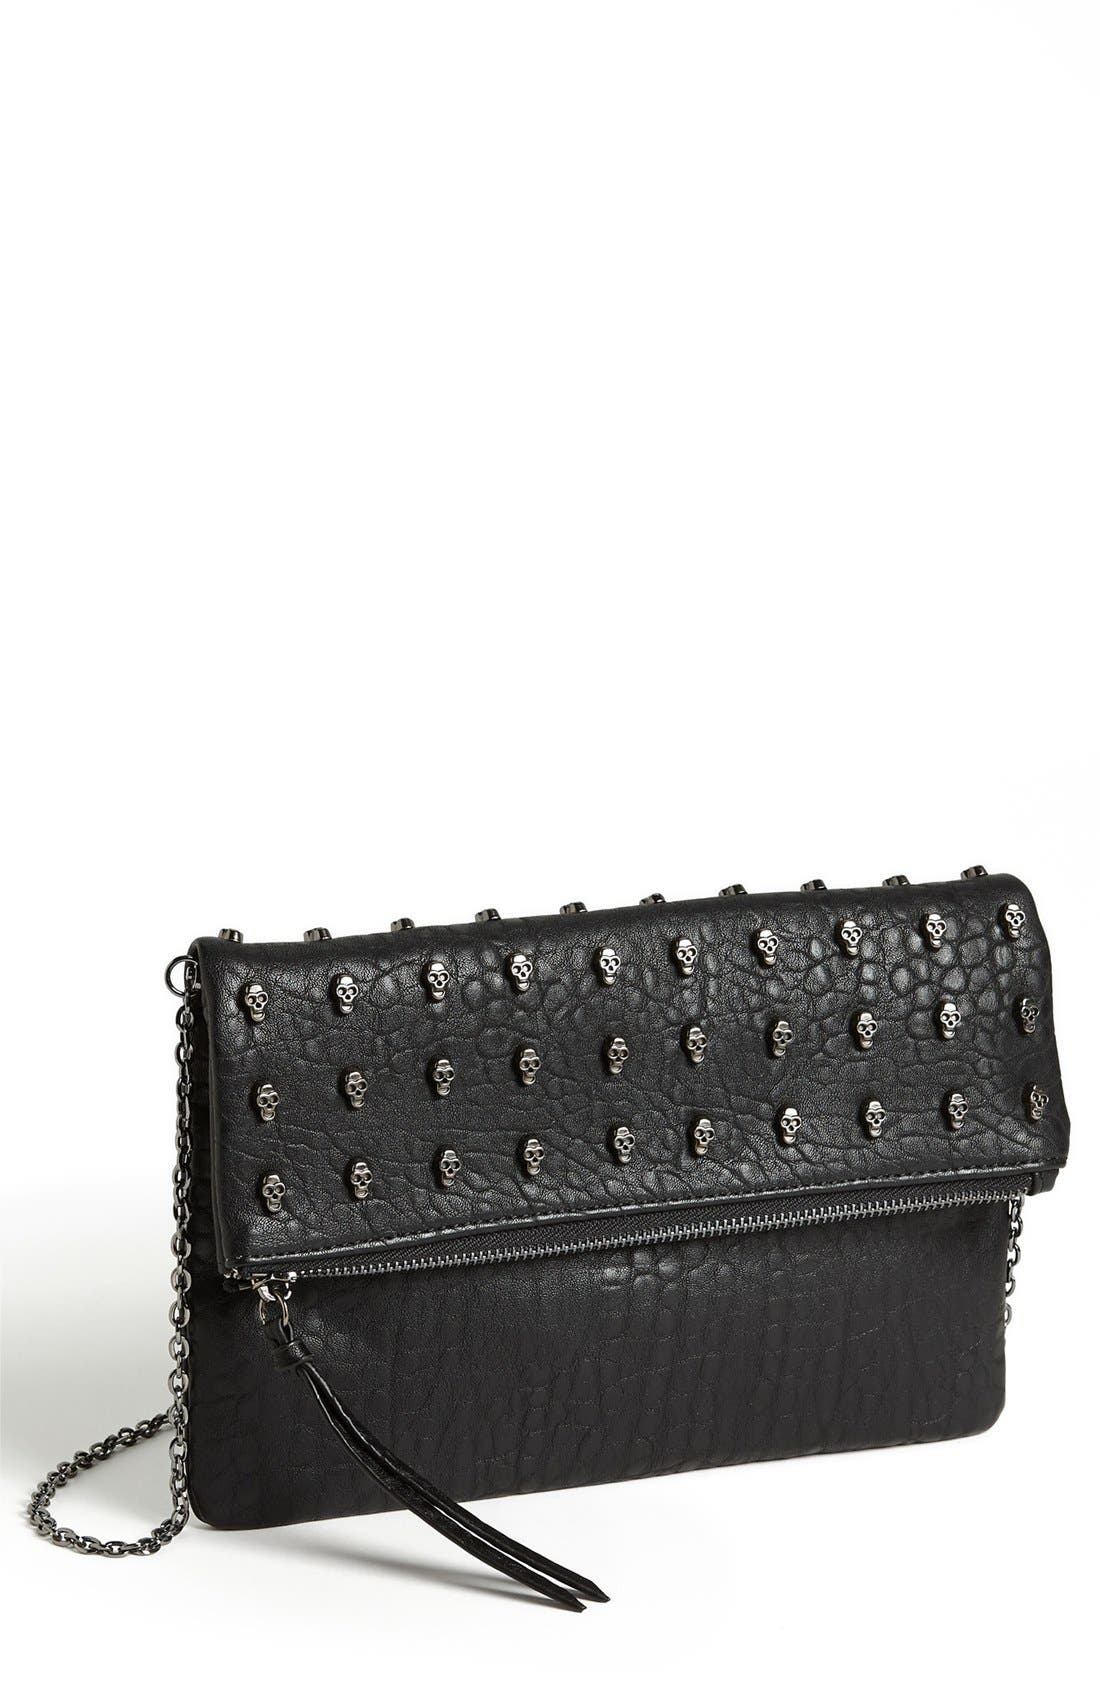 Main Image - Urban Expressions Handbags 'Jam' Clutch